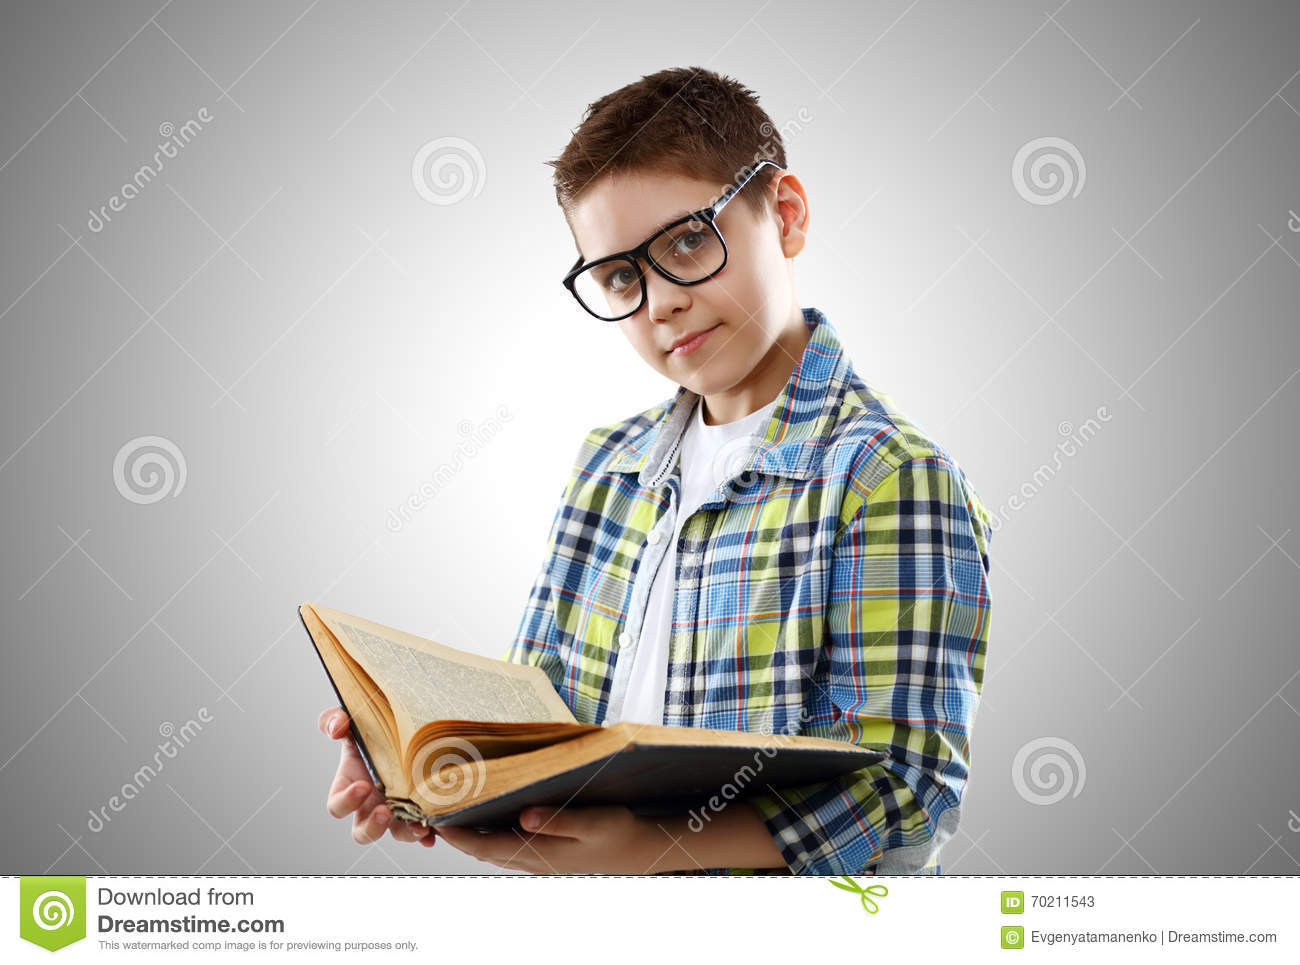 2e360ae6dd Child Boy Teenager With Glasses And Book Stock Image - Image of ...